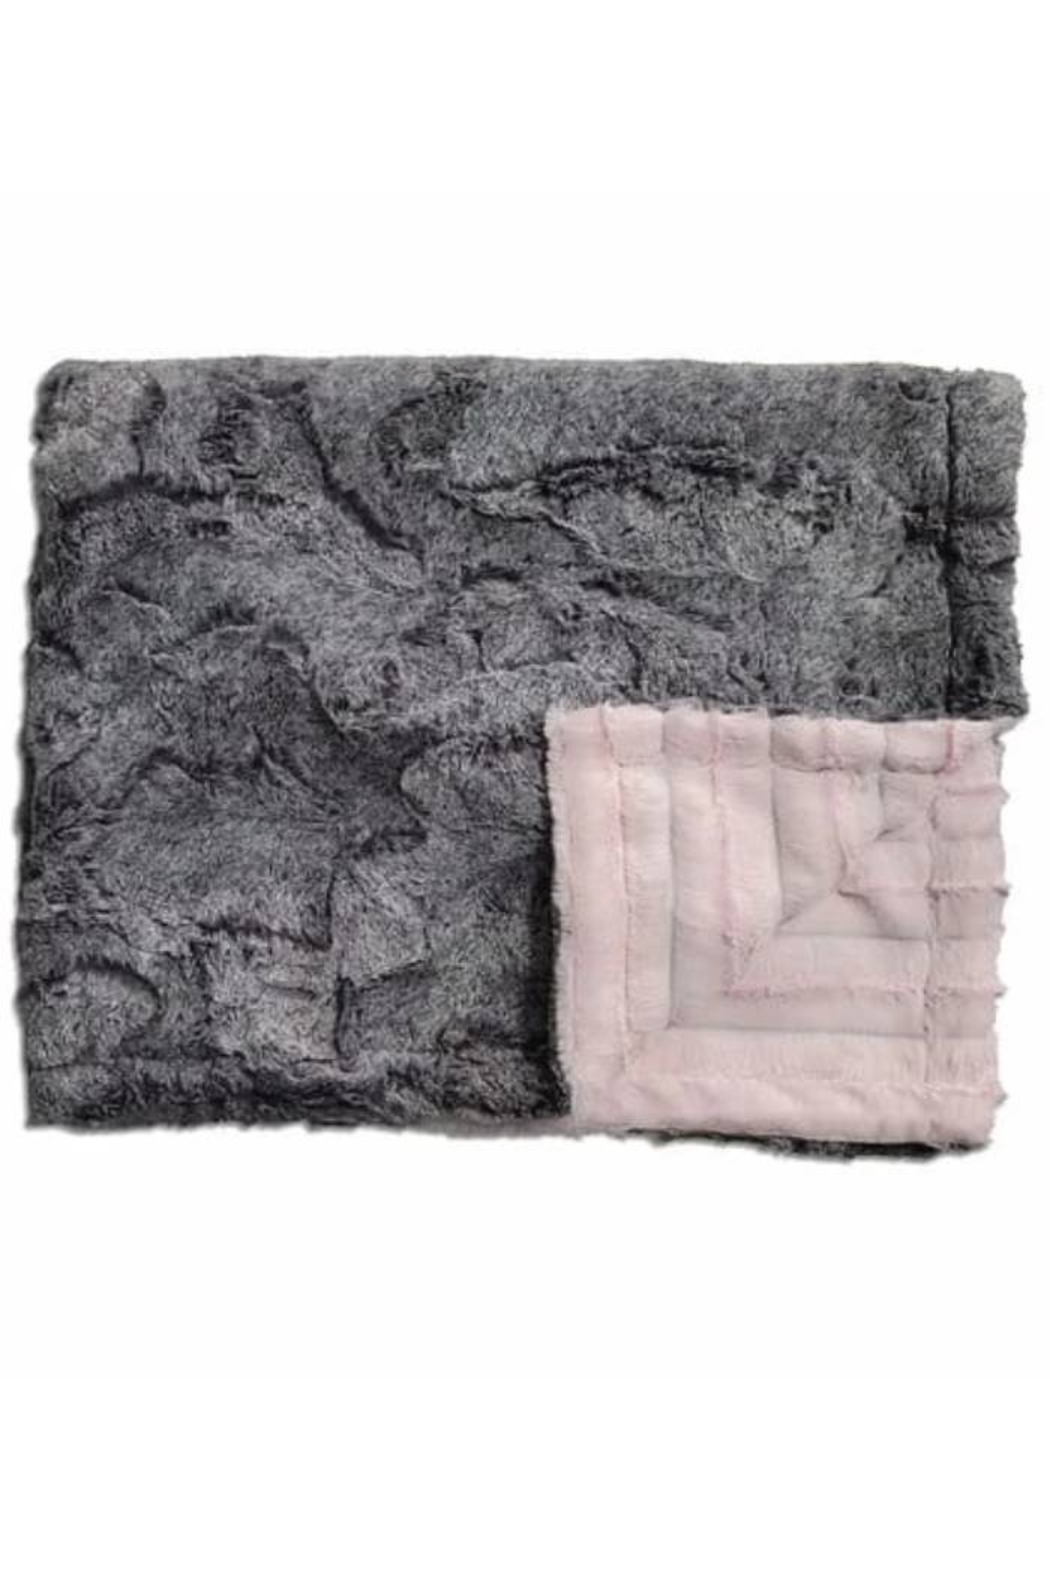 Winx+Blinx Pinkalicious Mini Minky Blankets (13 X 12.5 Inches)for Newborn Baby Boys Girls Winter Swaddle - Main Image